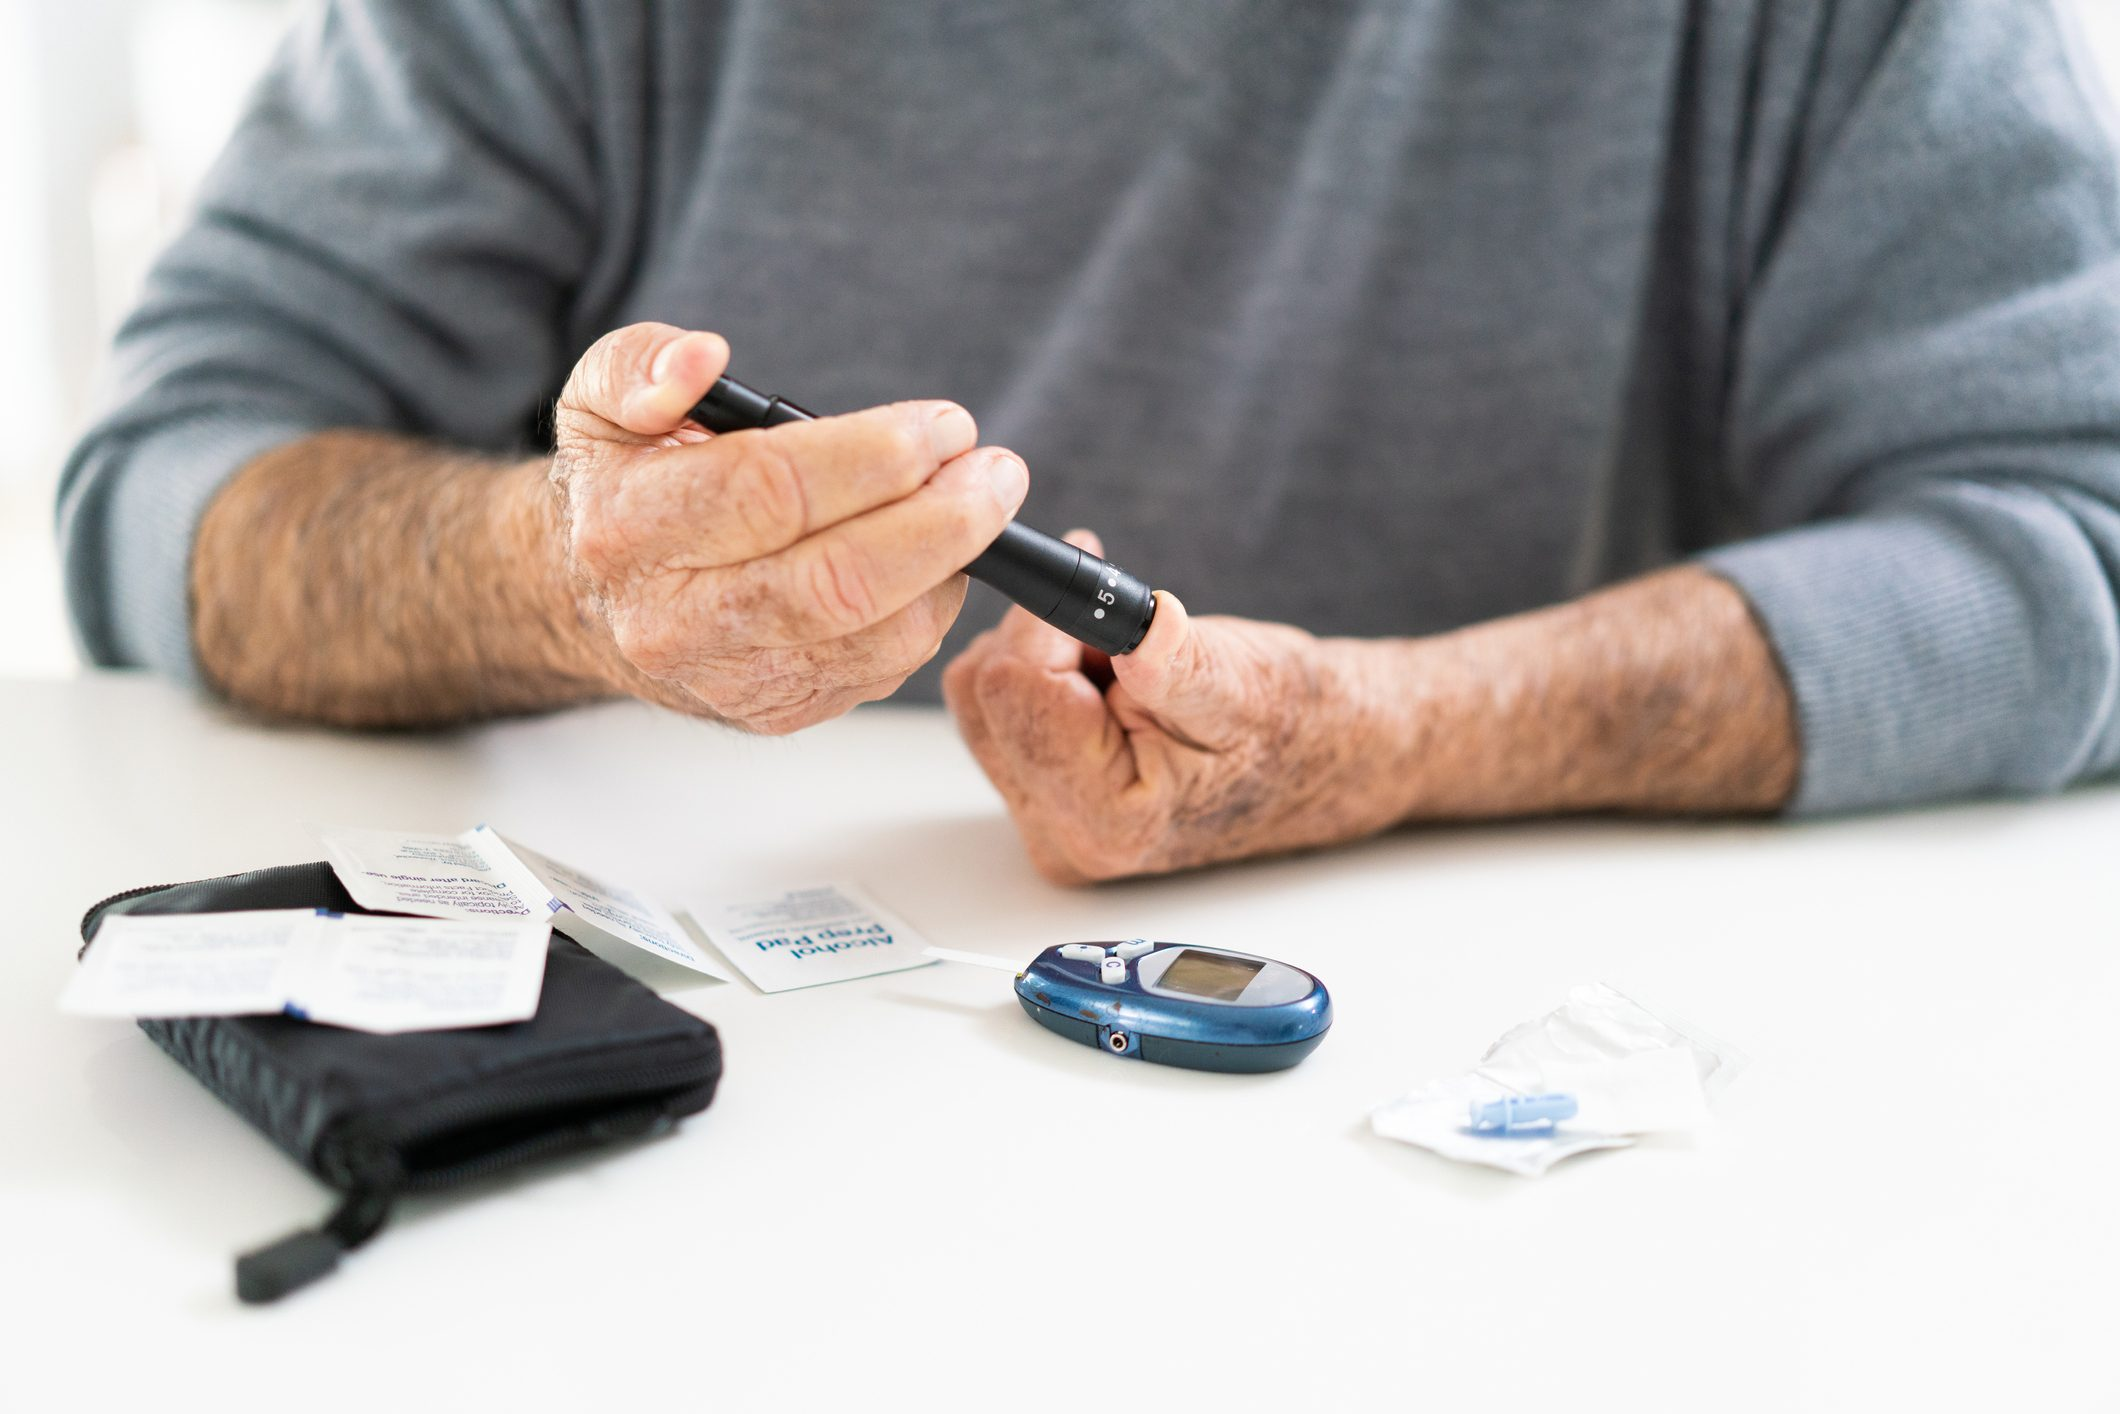 man with diabetes taking blood sugar